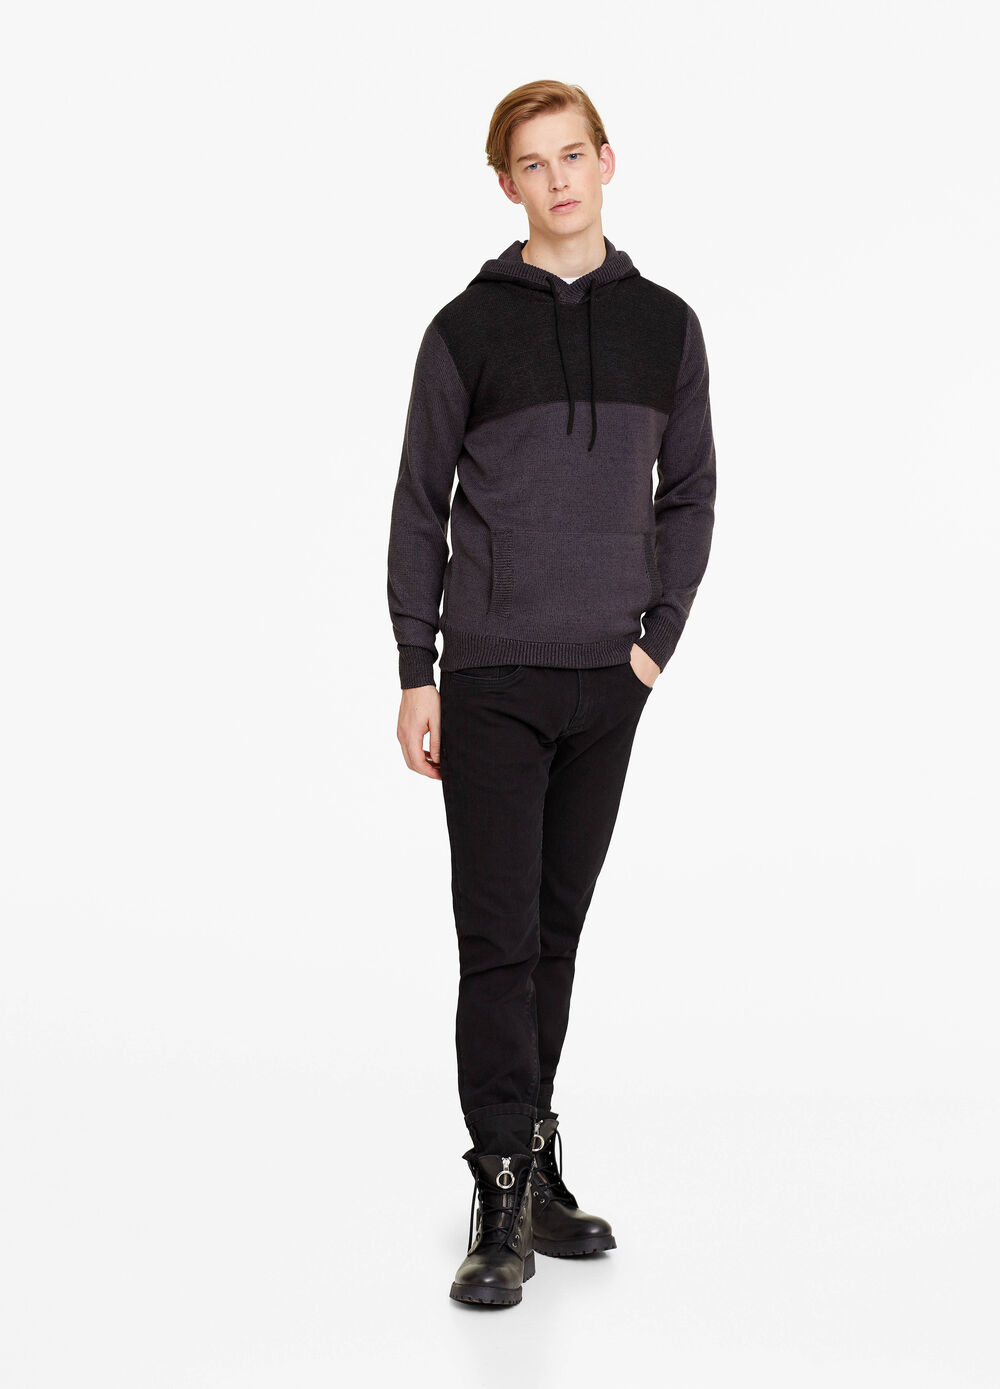 Two-tone pullover with hood